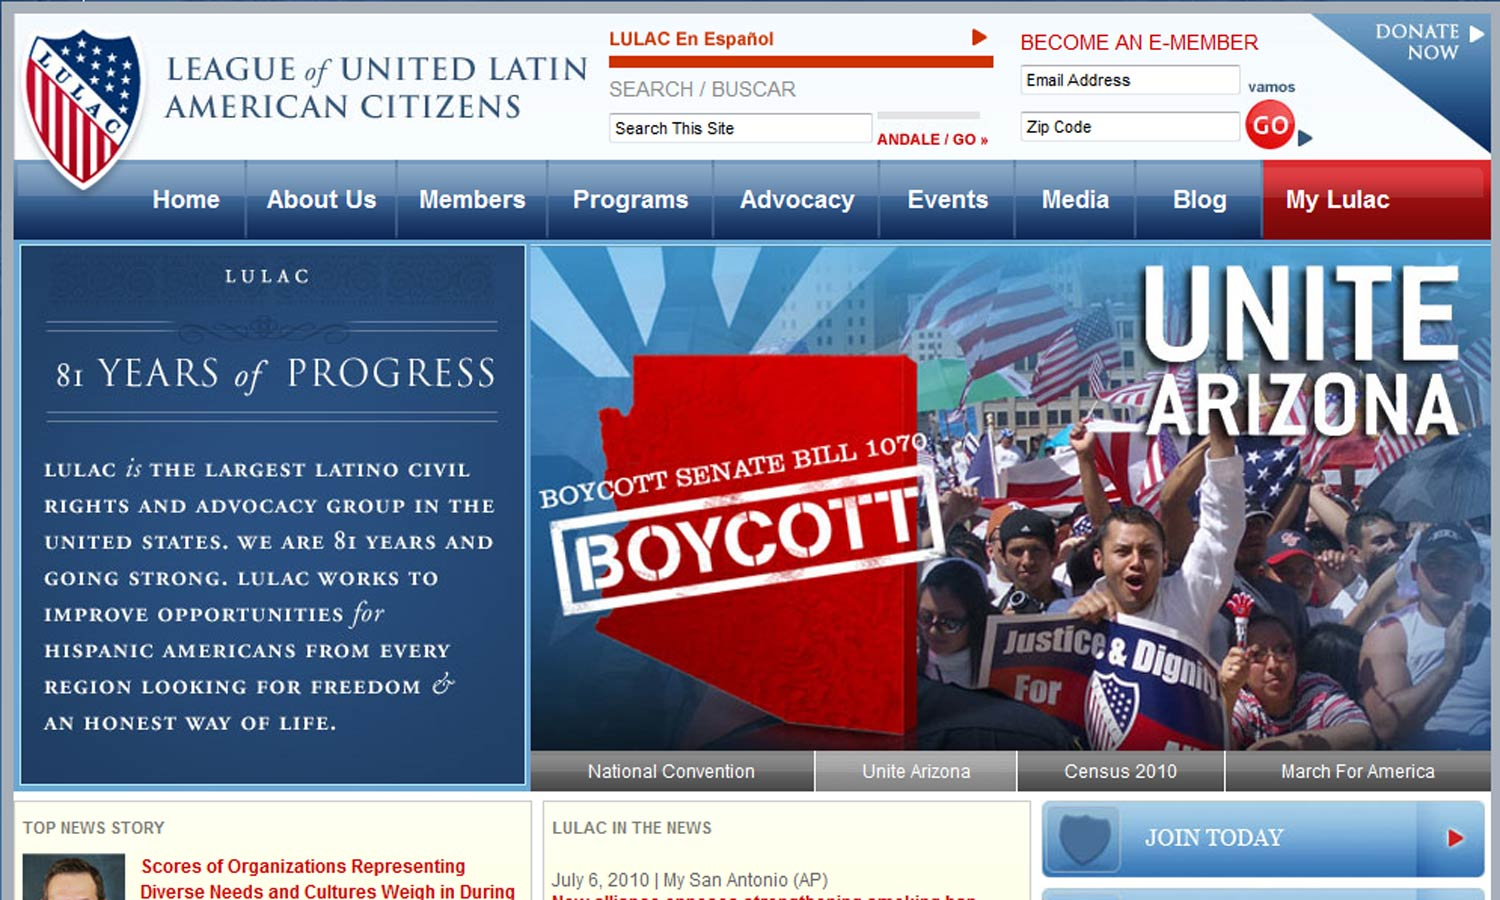 Lulac's website